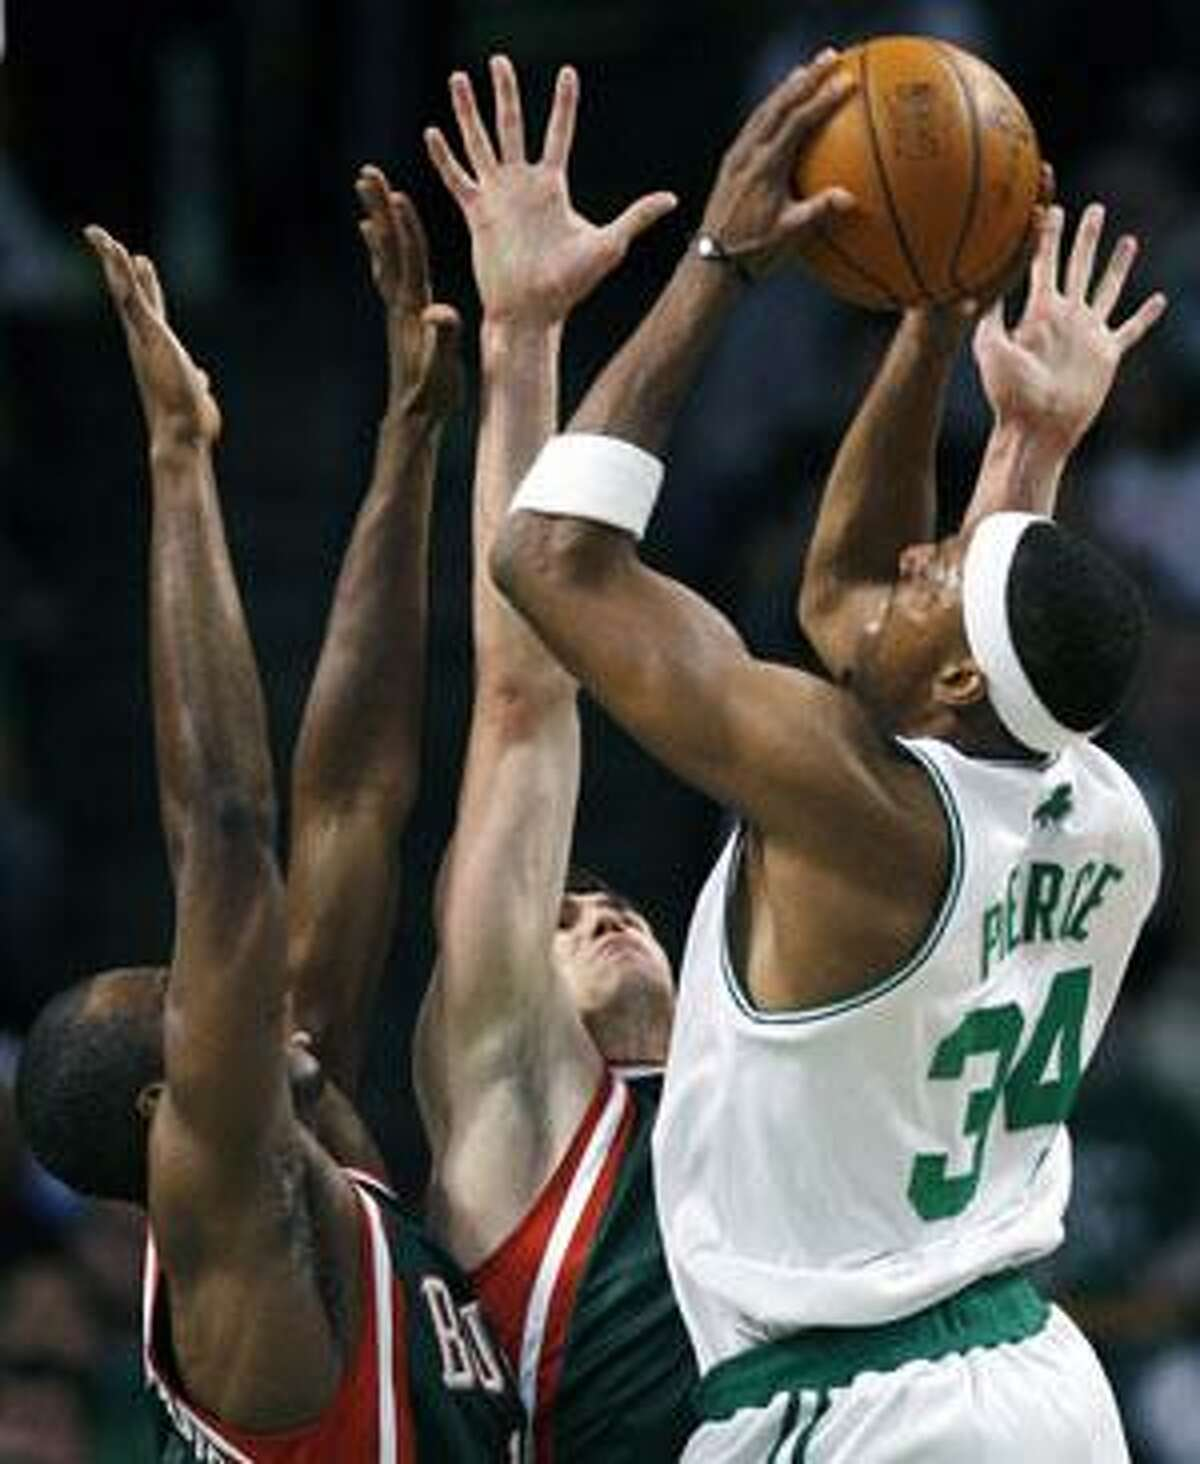 Boston Celtics' Paul Pierce (34) shoots over Milwaukee Bucks' Luc Mbah a Moute, left, and Ersan Ilyasova during the first quarter Tuesday in Boston.